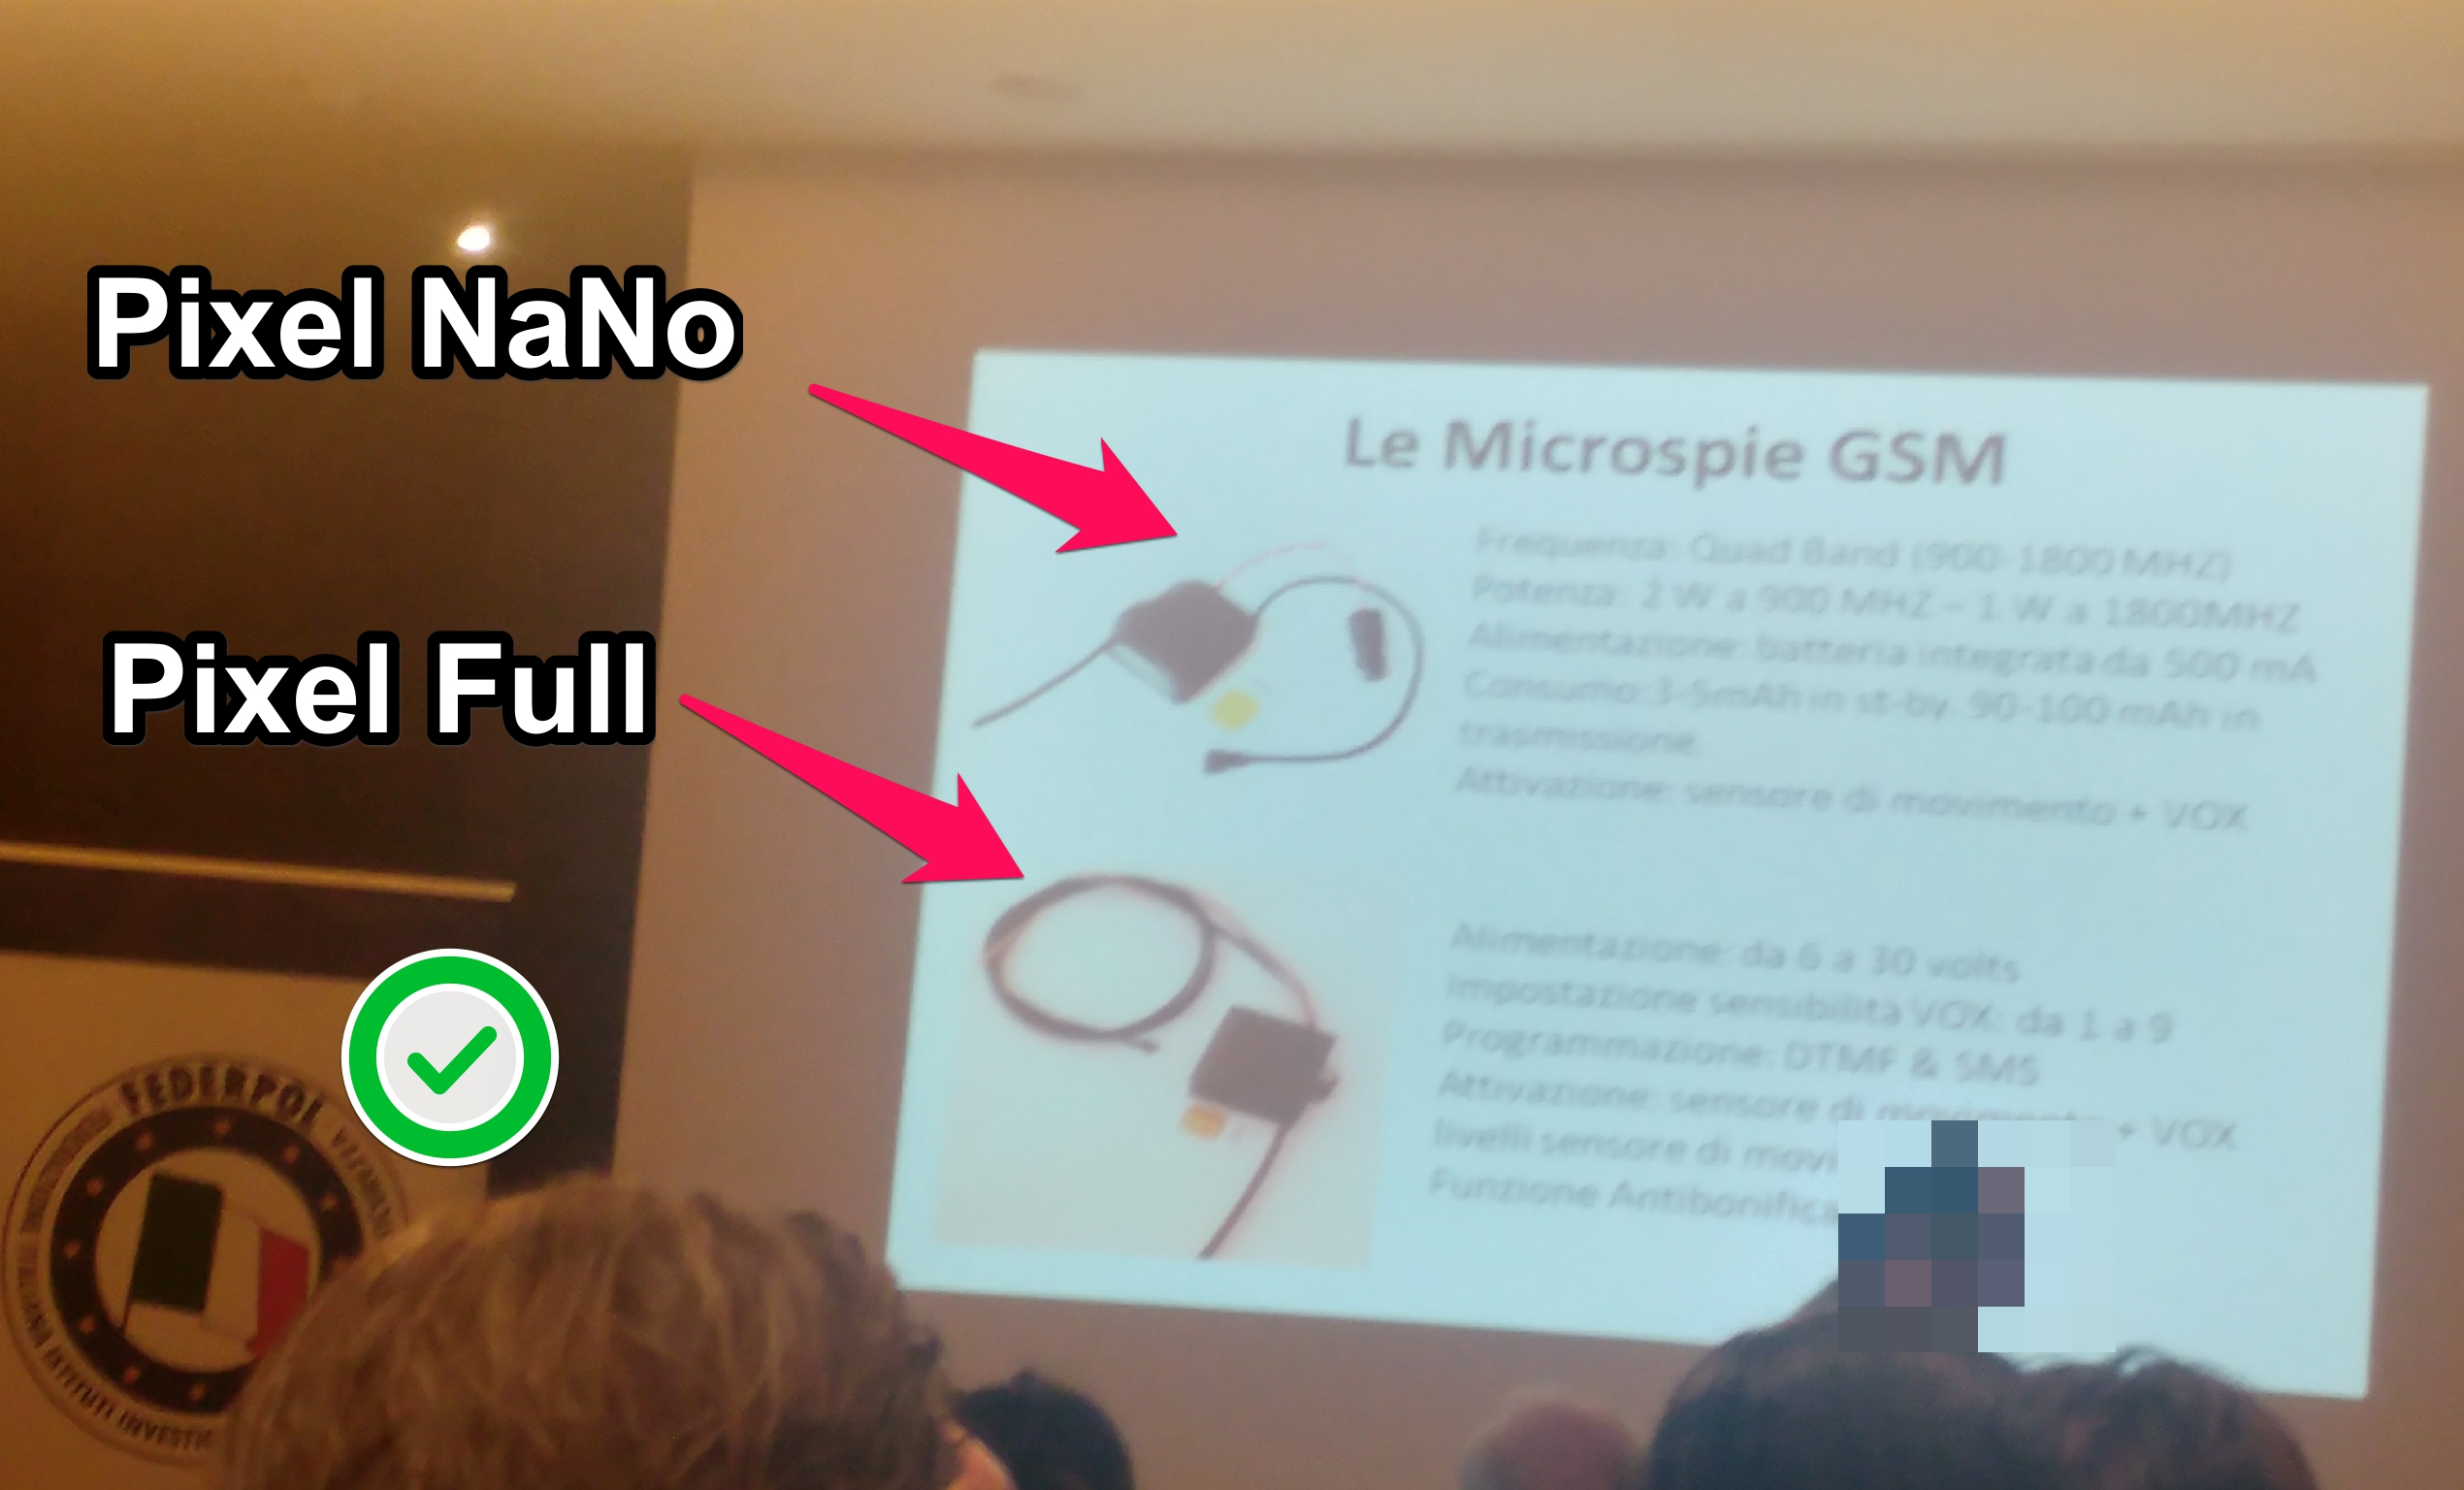 Microspia gsm professionale